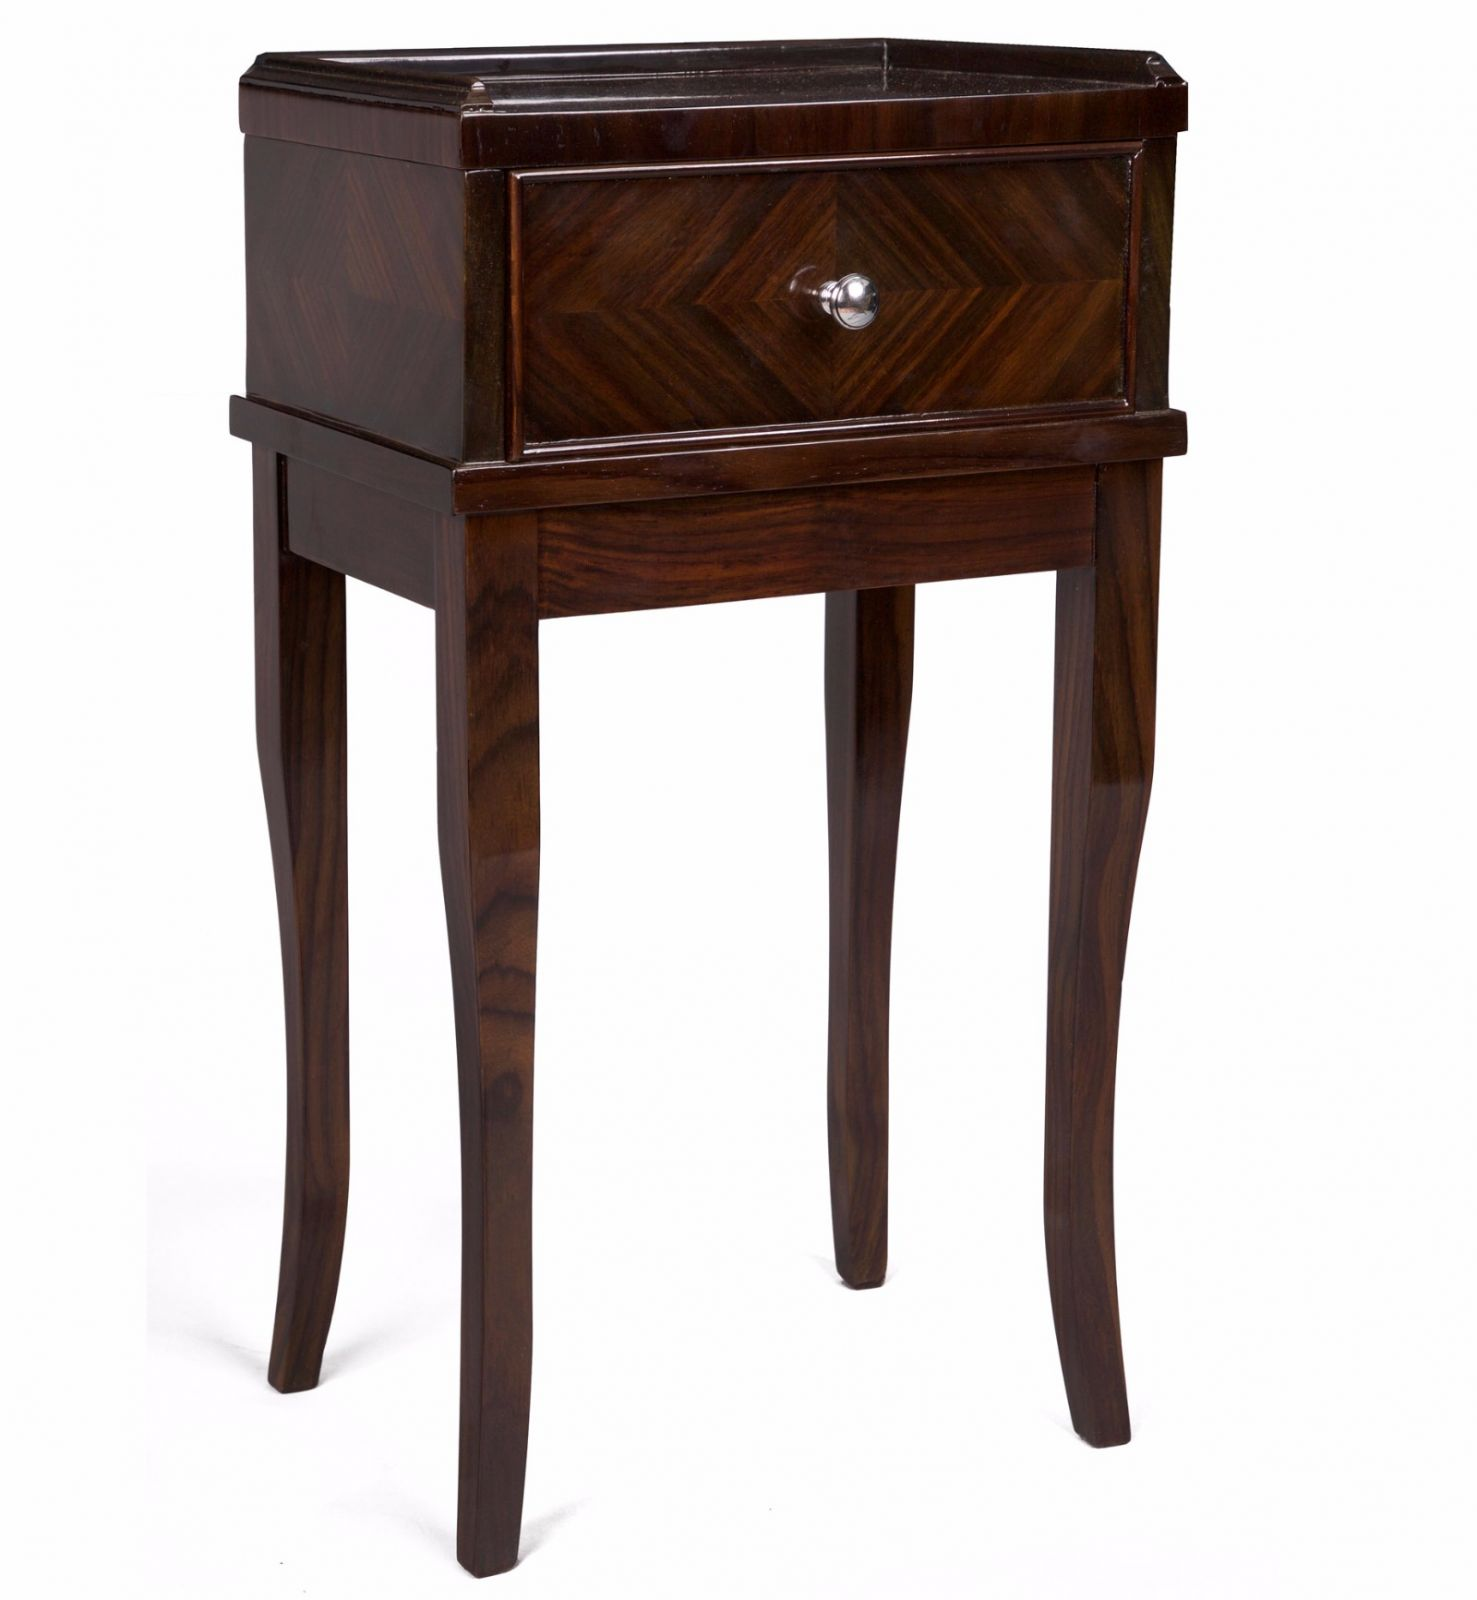 Rosewood lamp table